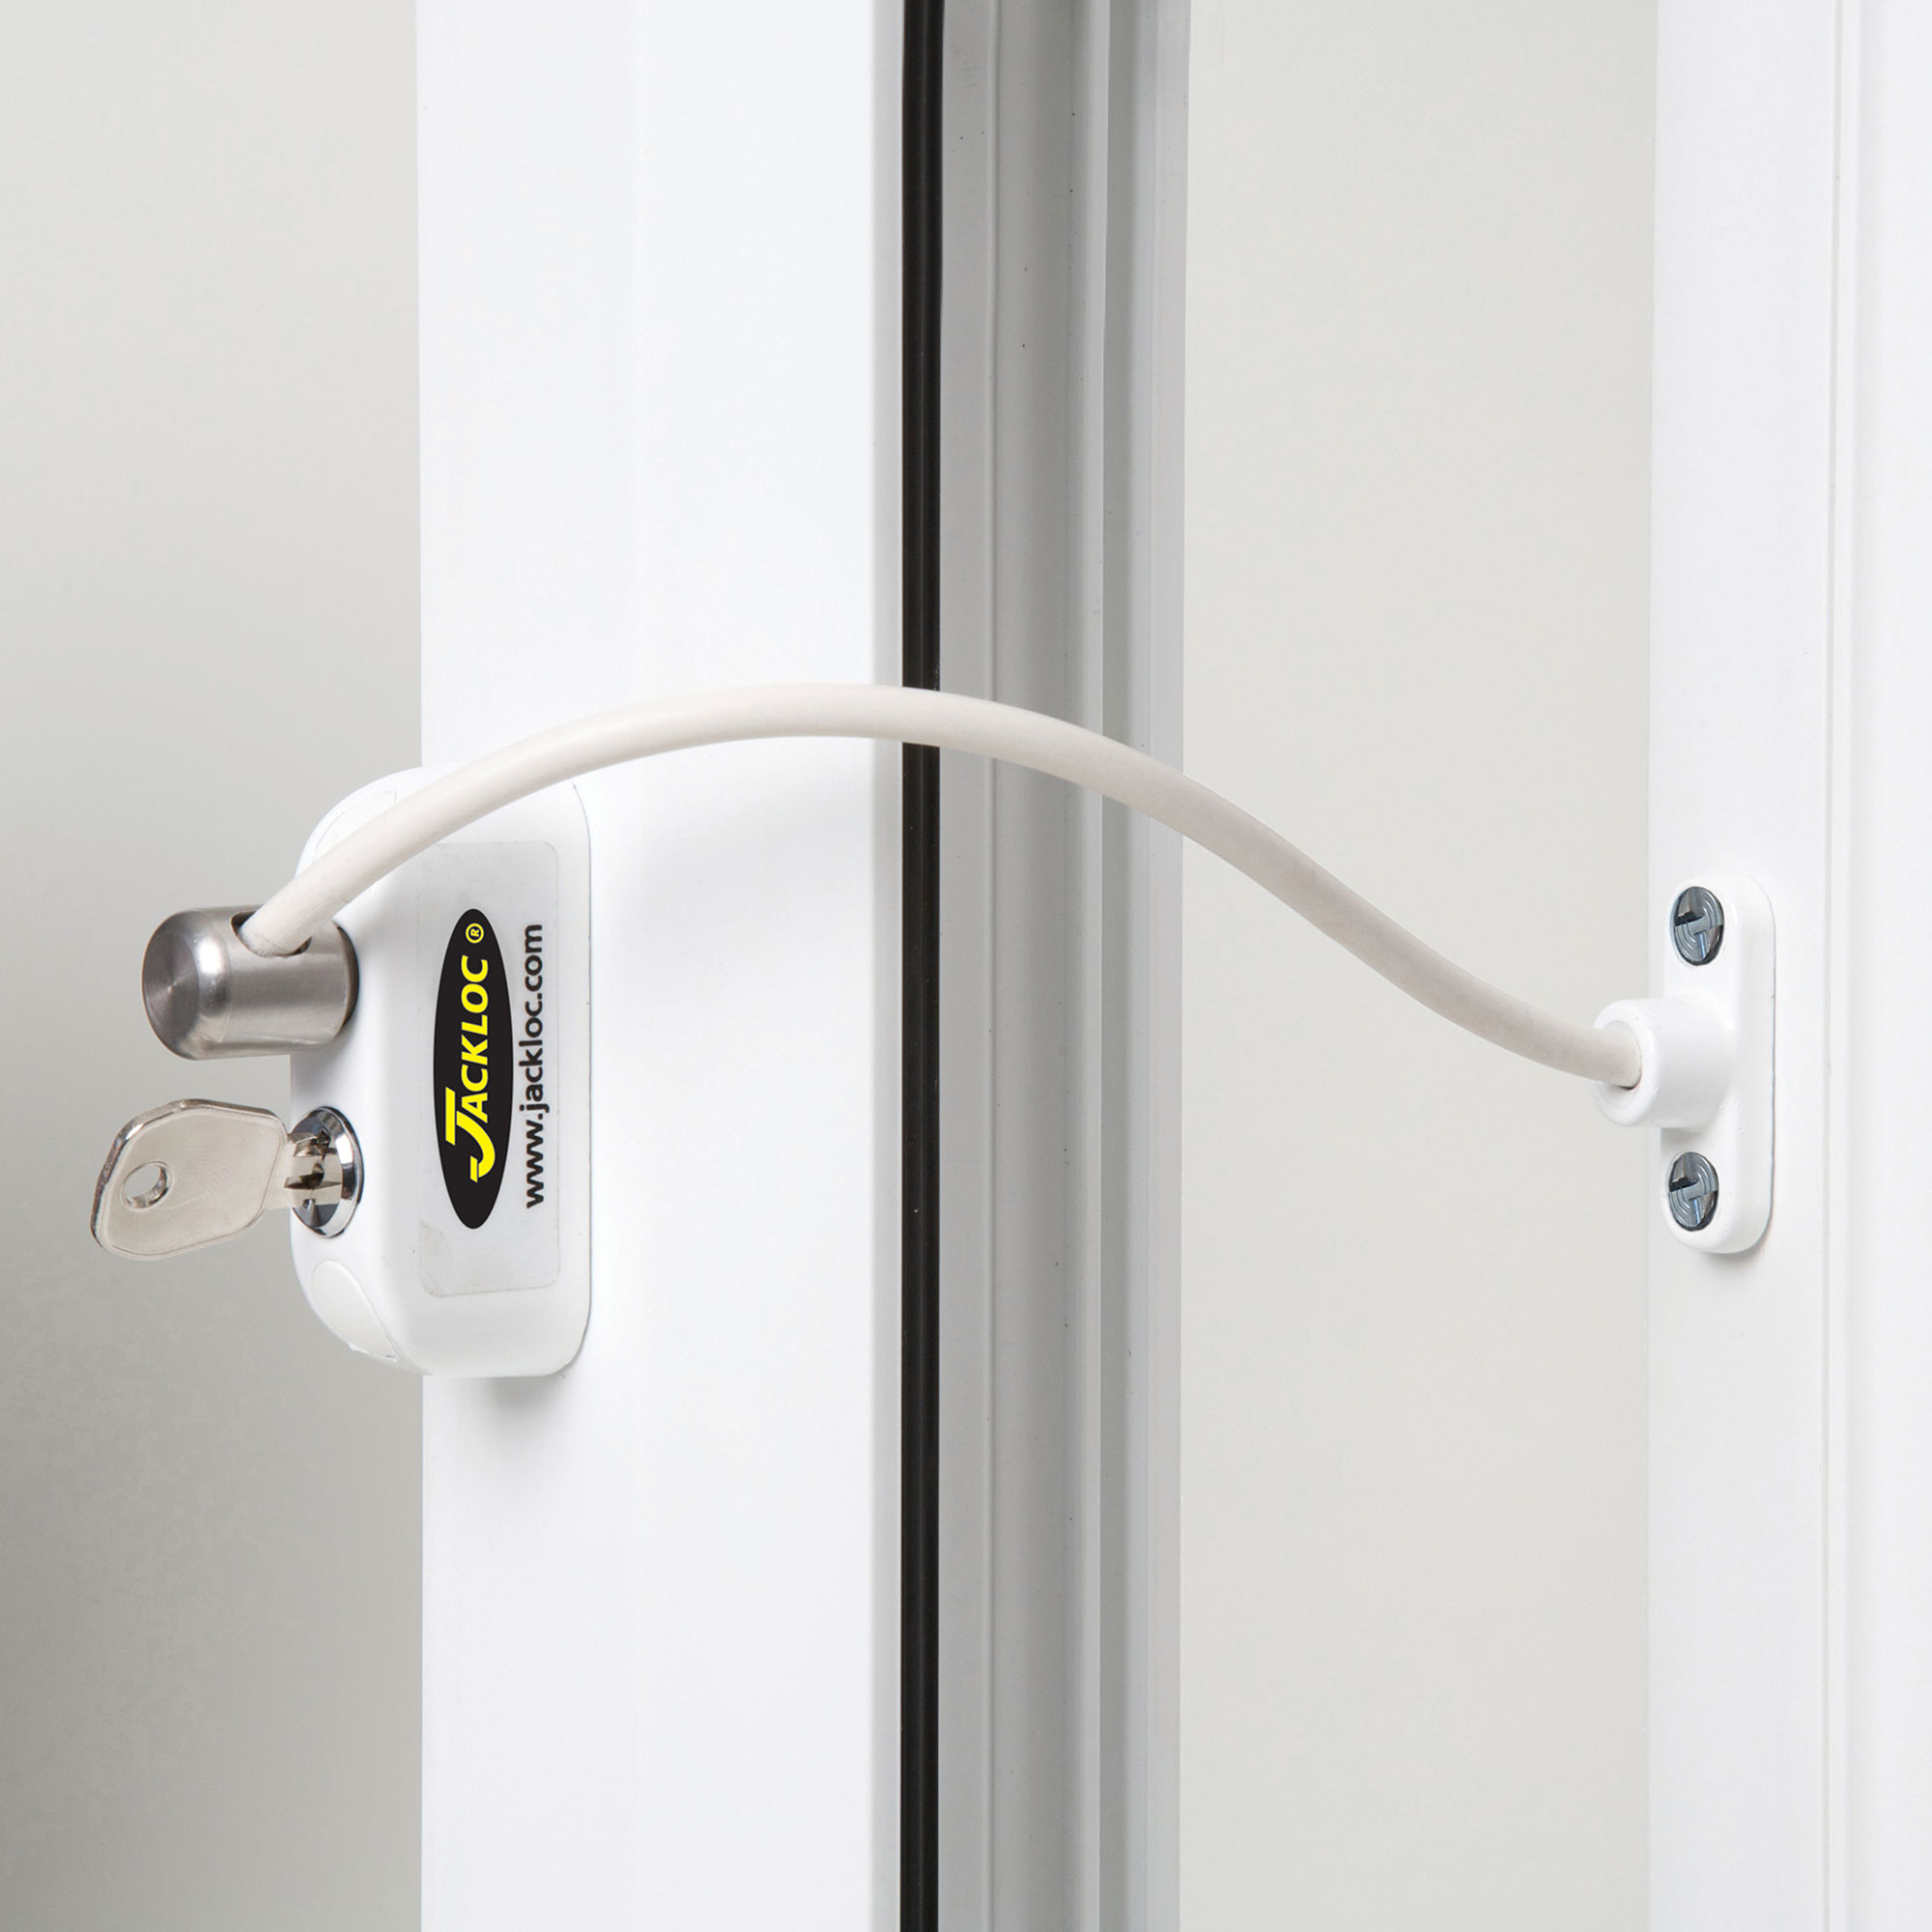 Pr0-5 cable window restrictor